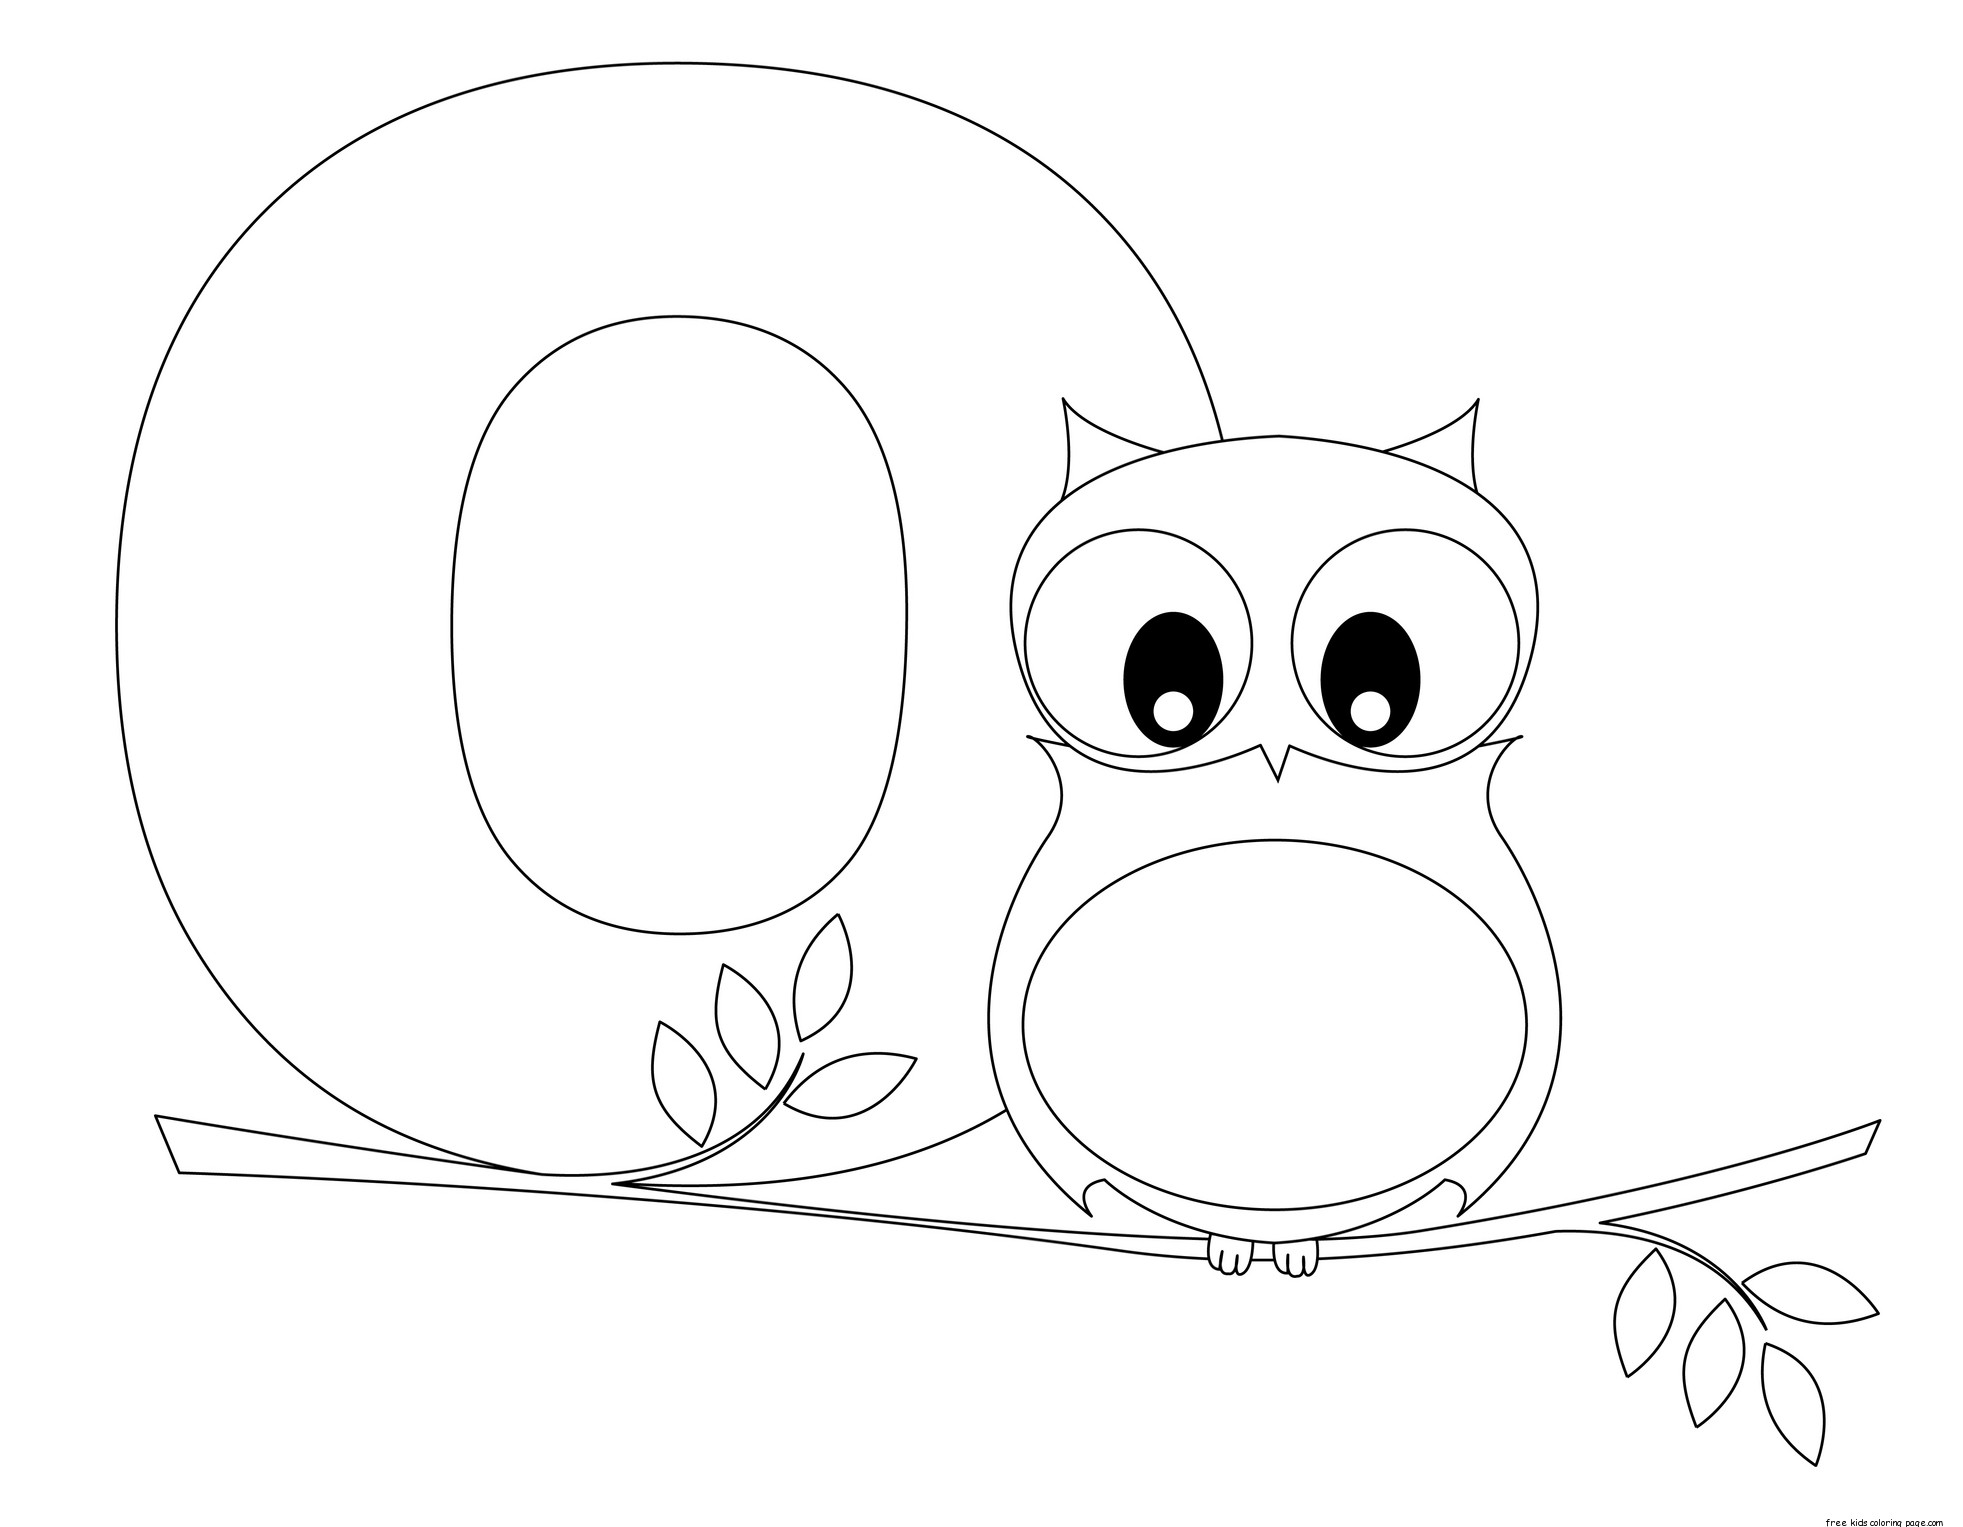 o coloring pages - photo #37